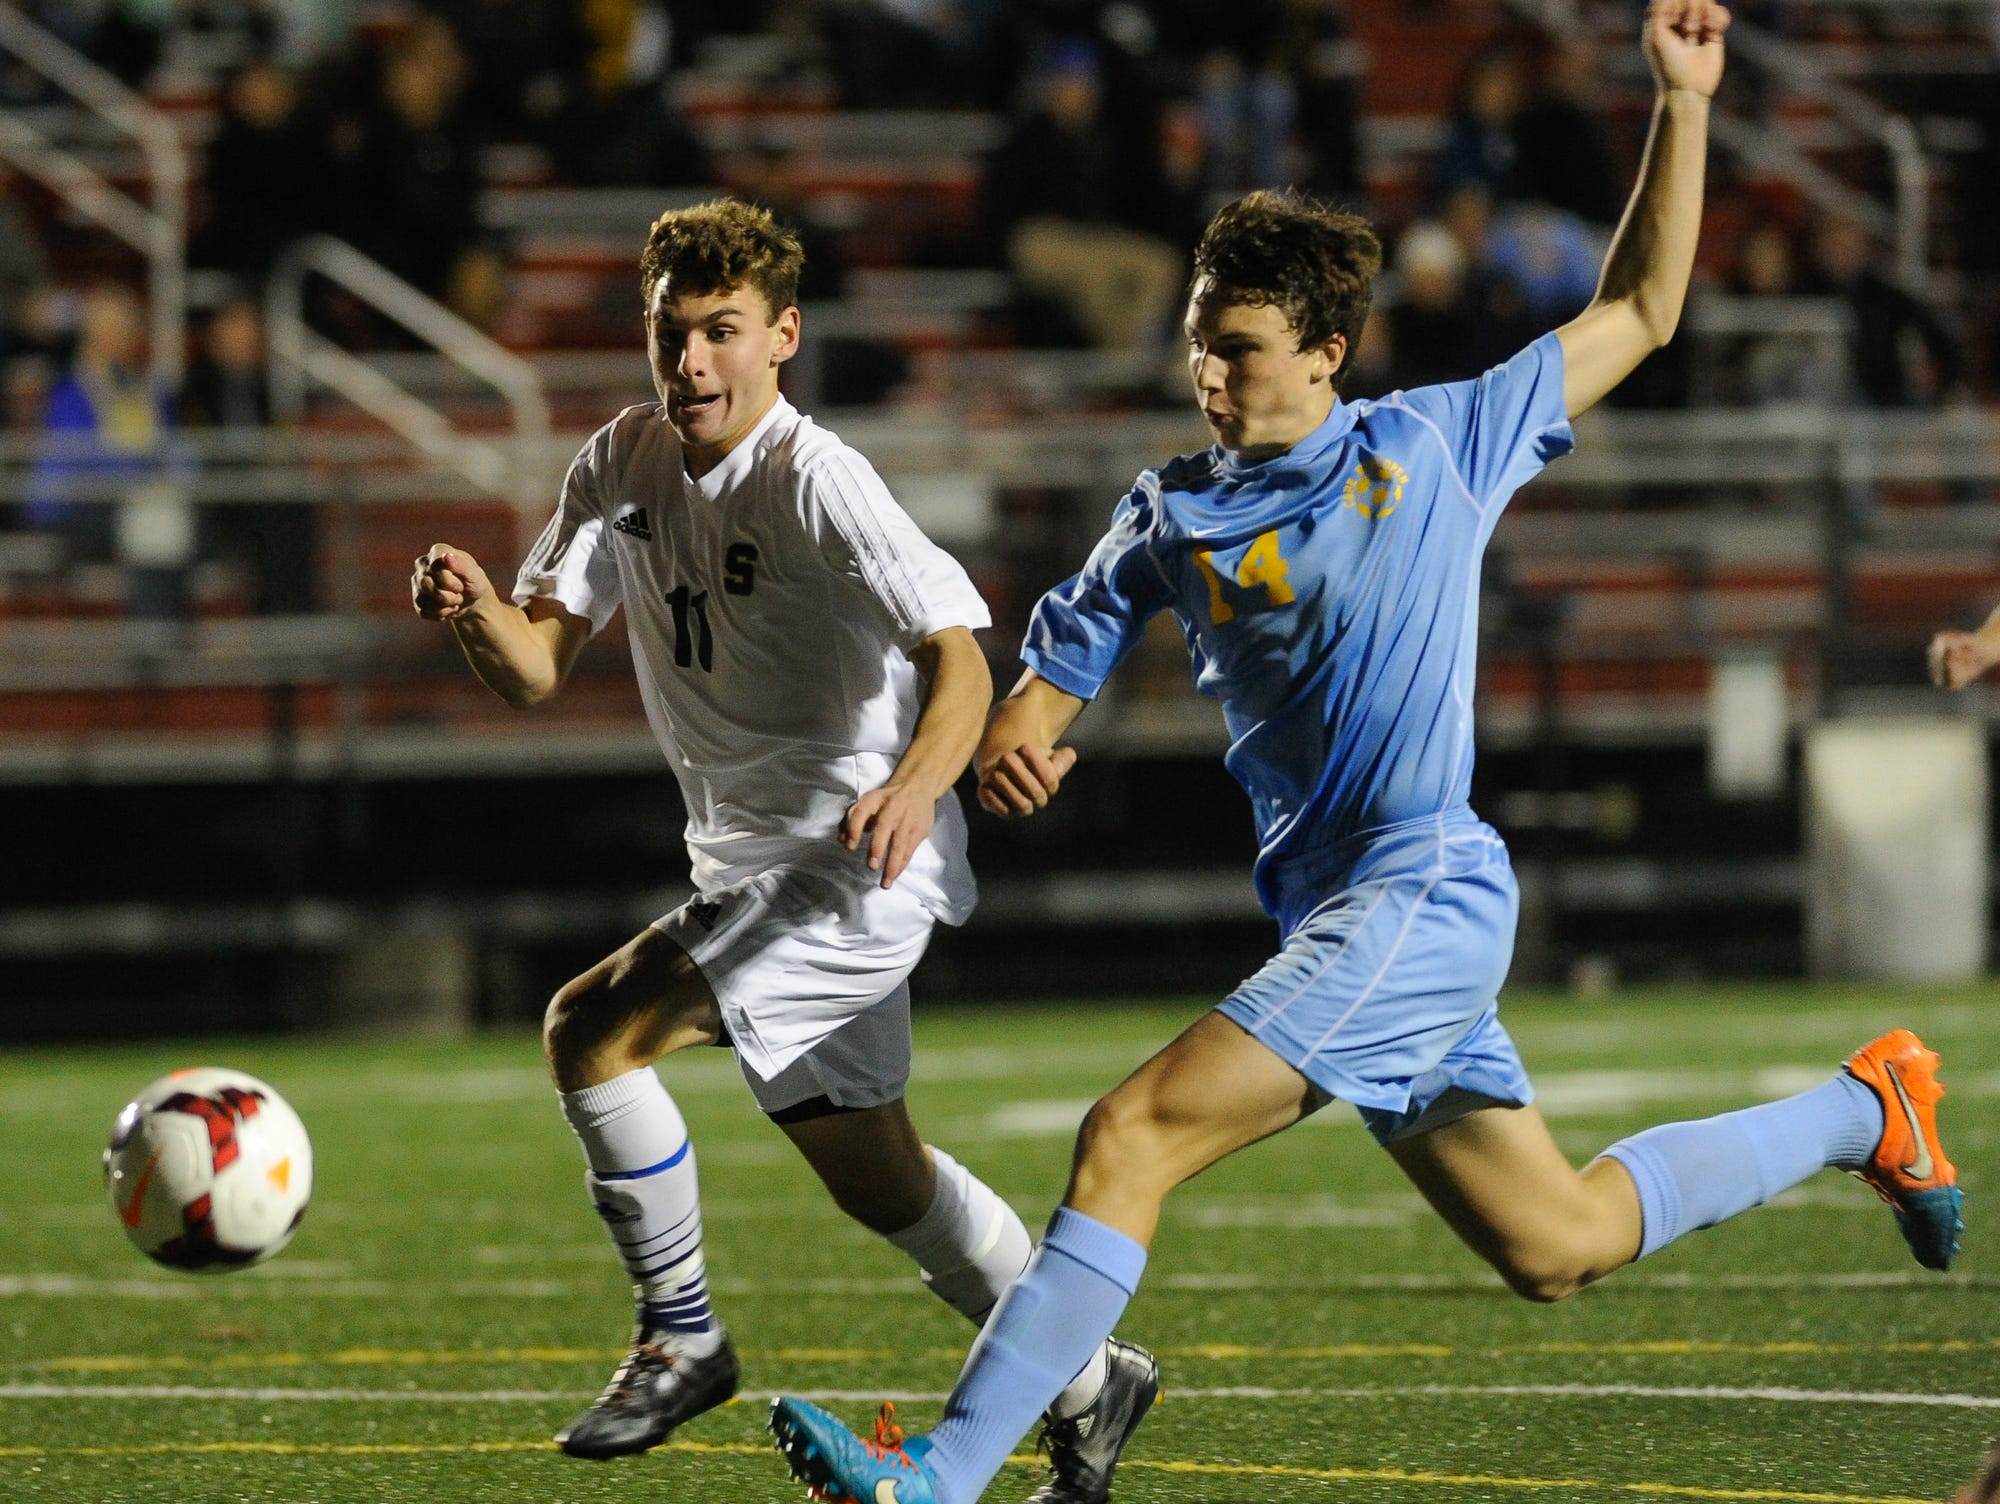 Salesianum's #11 Trevor Clare and Cape Henlopen's #14 Zachary Gelof run for the ball in the second half of the DIAA Division I soccer semifinal game at Smyrna High School.